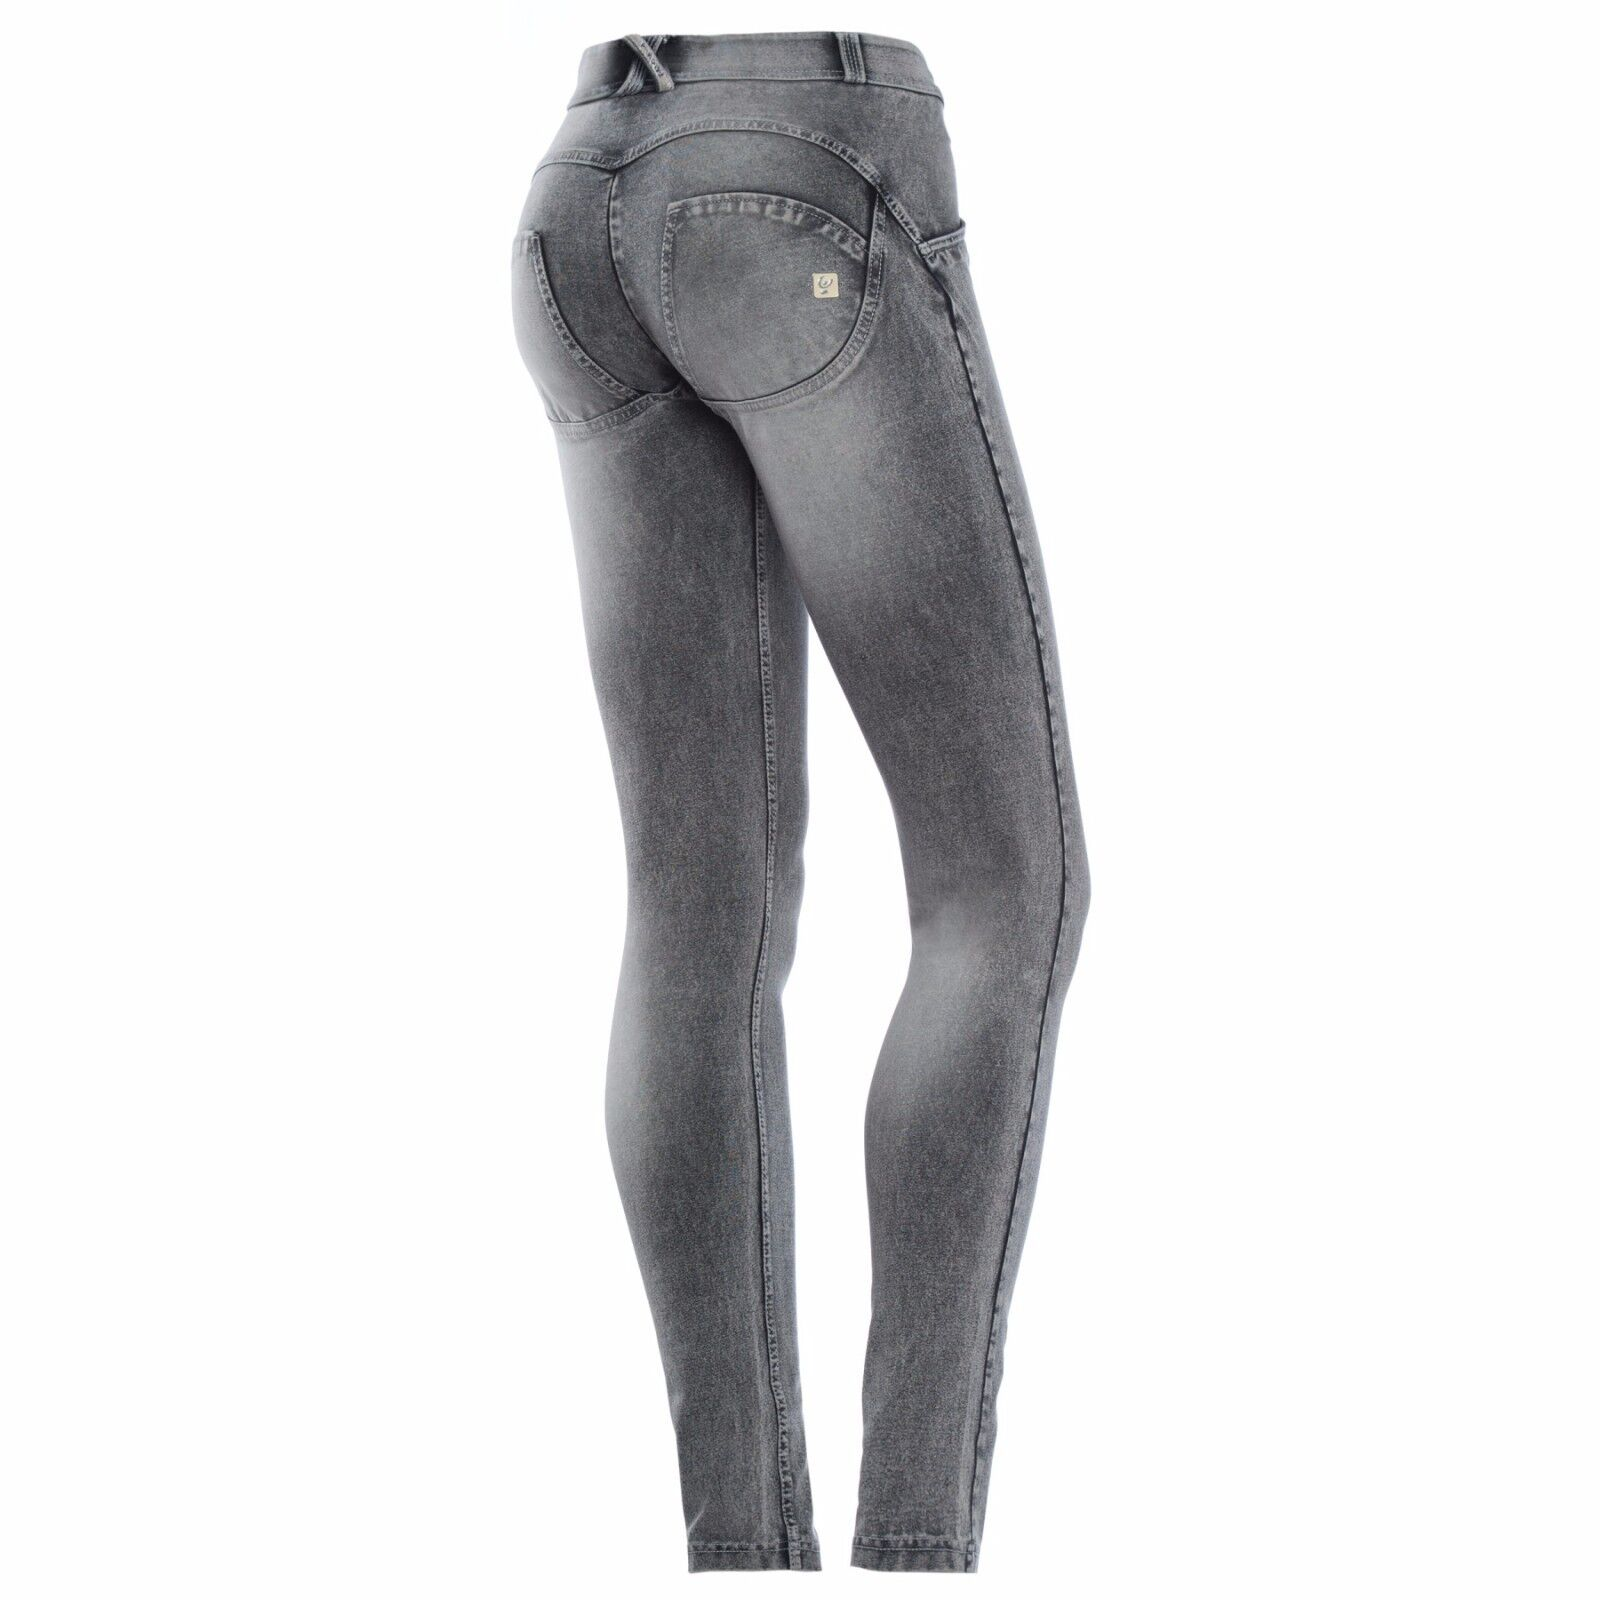 SCONTO 30% FREDDY WR.UP JEANS STONE WASH PANTALONE PUSH UP WRUP1RJ14E REGULAR